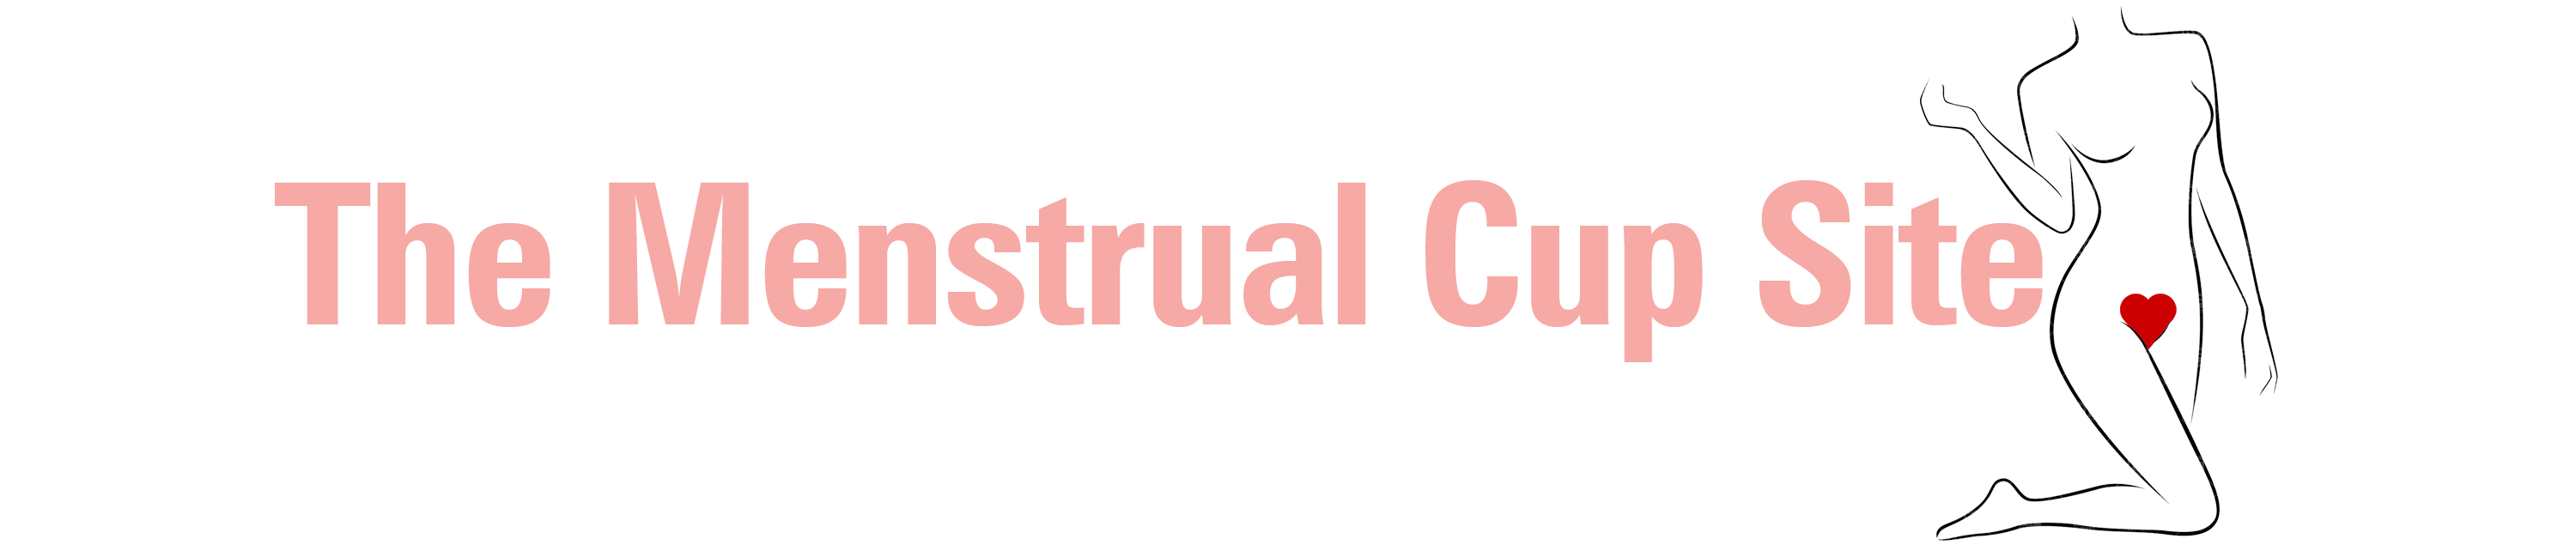 Menstrual Cup Site